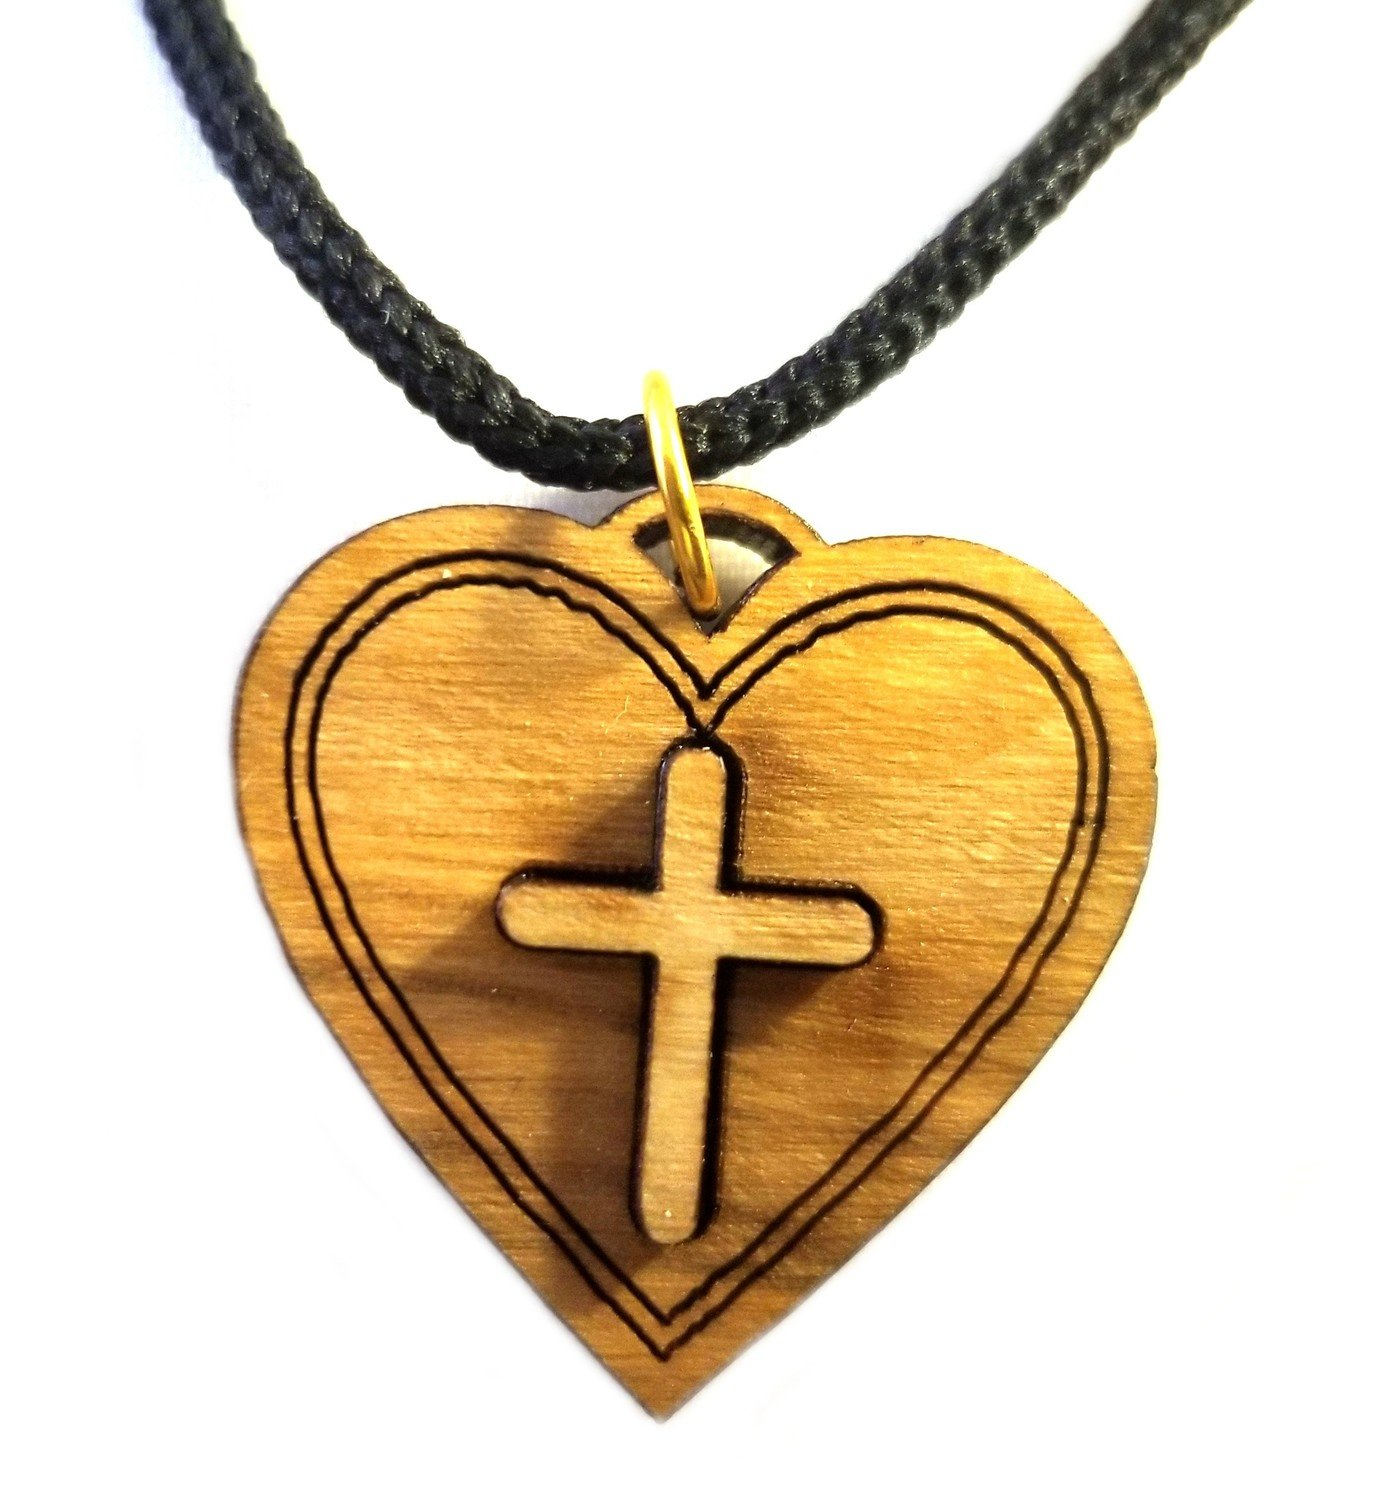 Multilayered Christian Heart Olive Wood Pendant